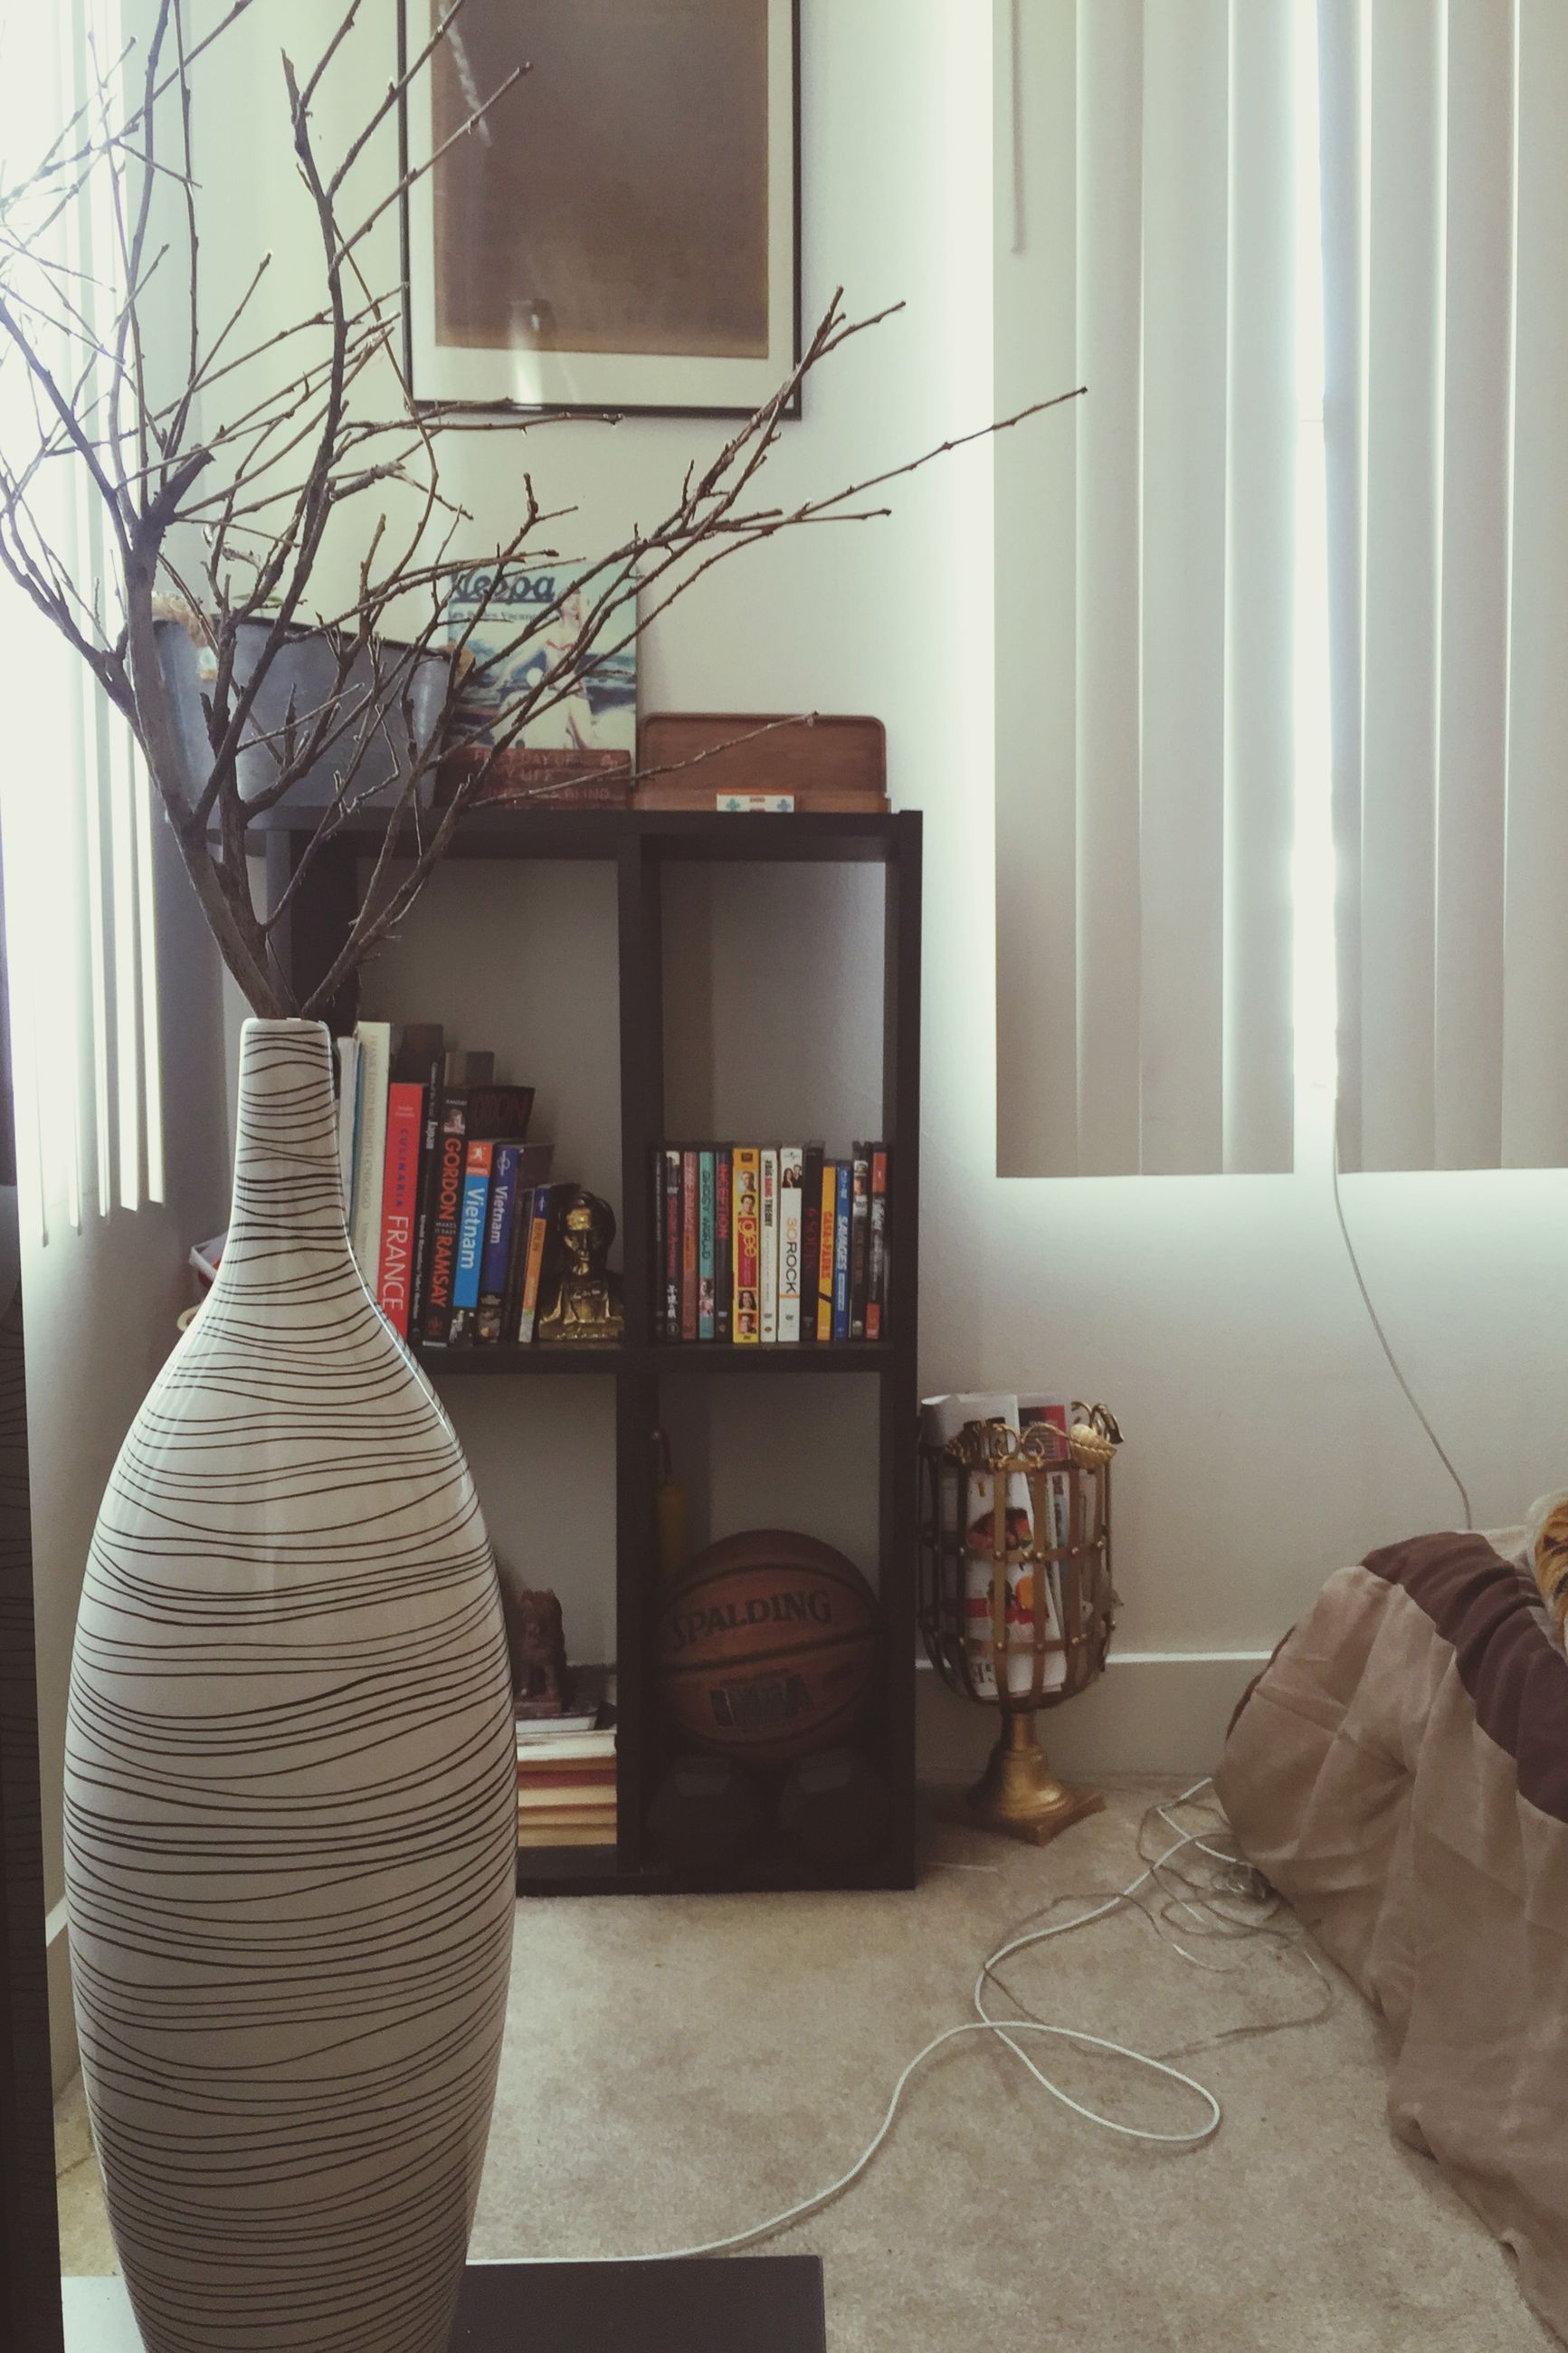 indoors, window, home interior, house, chair, architecture, absence, built structure, curtain, table, potted plant, day, wall - building feature, empty, hanging, no people, sunlight, wall, still life, arrangement